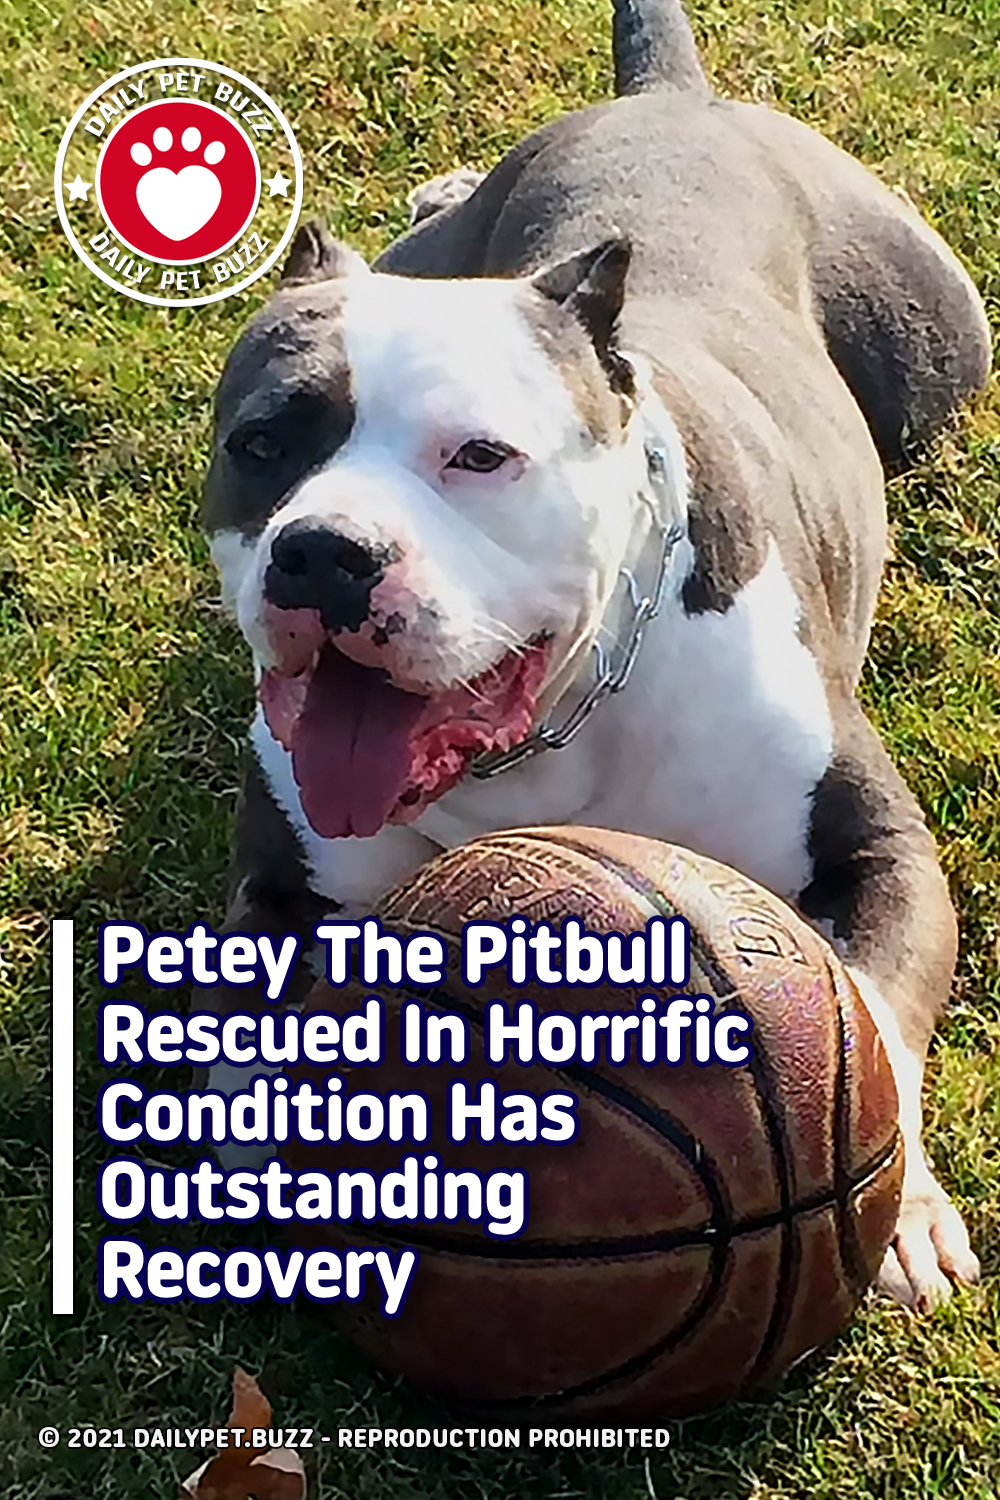 Petey The Pitbull Rescued In Horrific Condition Has Outstanding Recovery